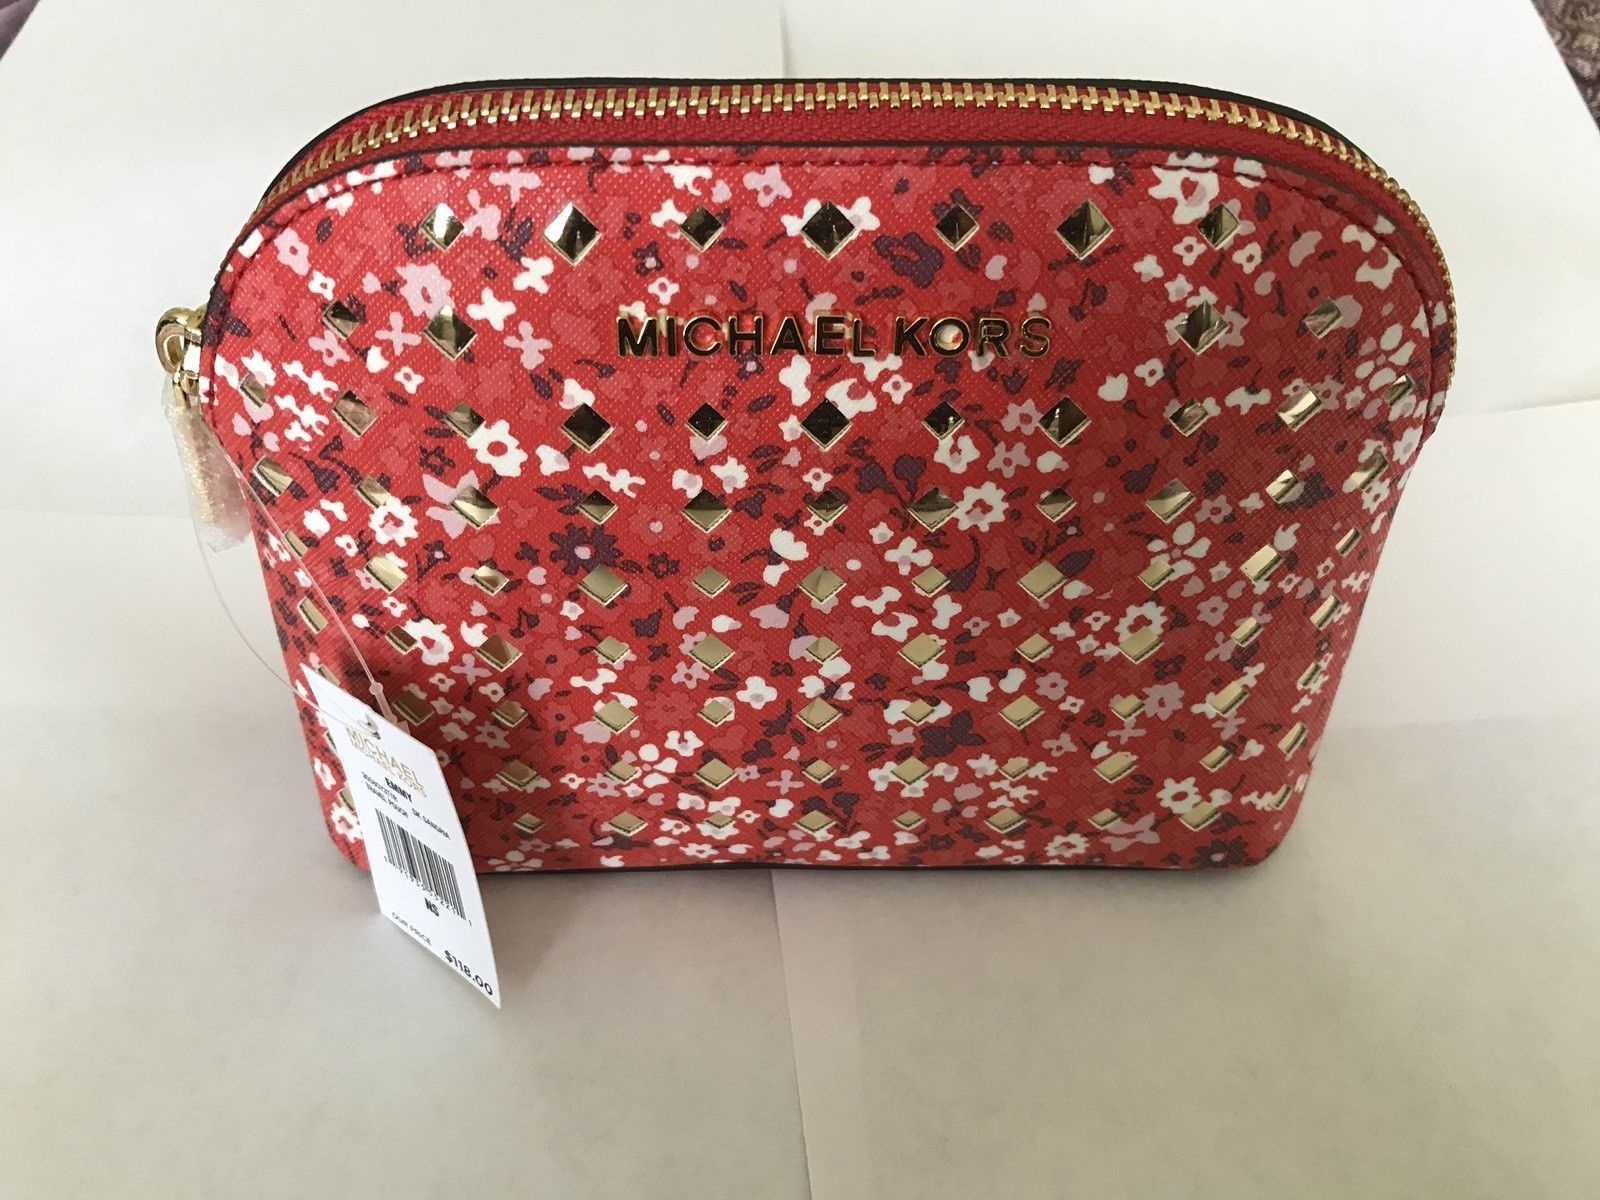 a89e2bcc4069 S l1600. S l1600. Previous. Michael Kors Emmy Dark Sangria Floral PVC  Leather Travel Pouch Cosmetic Case